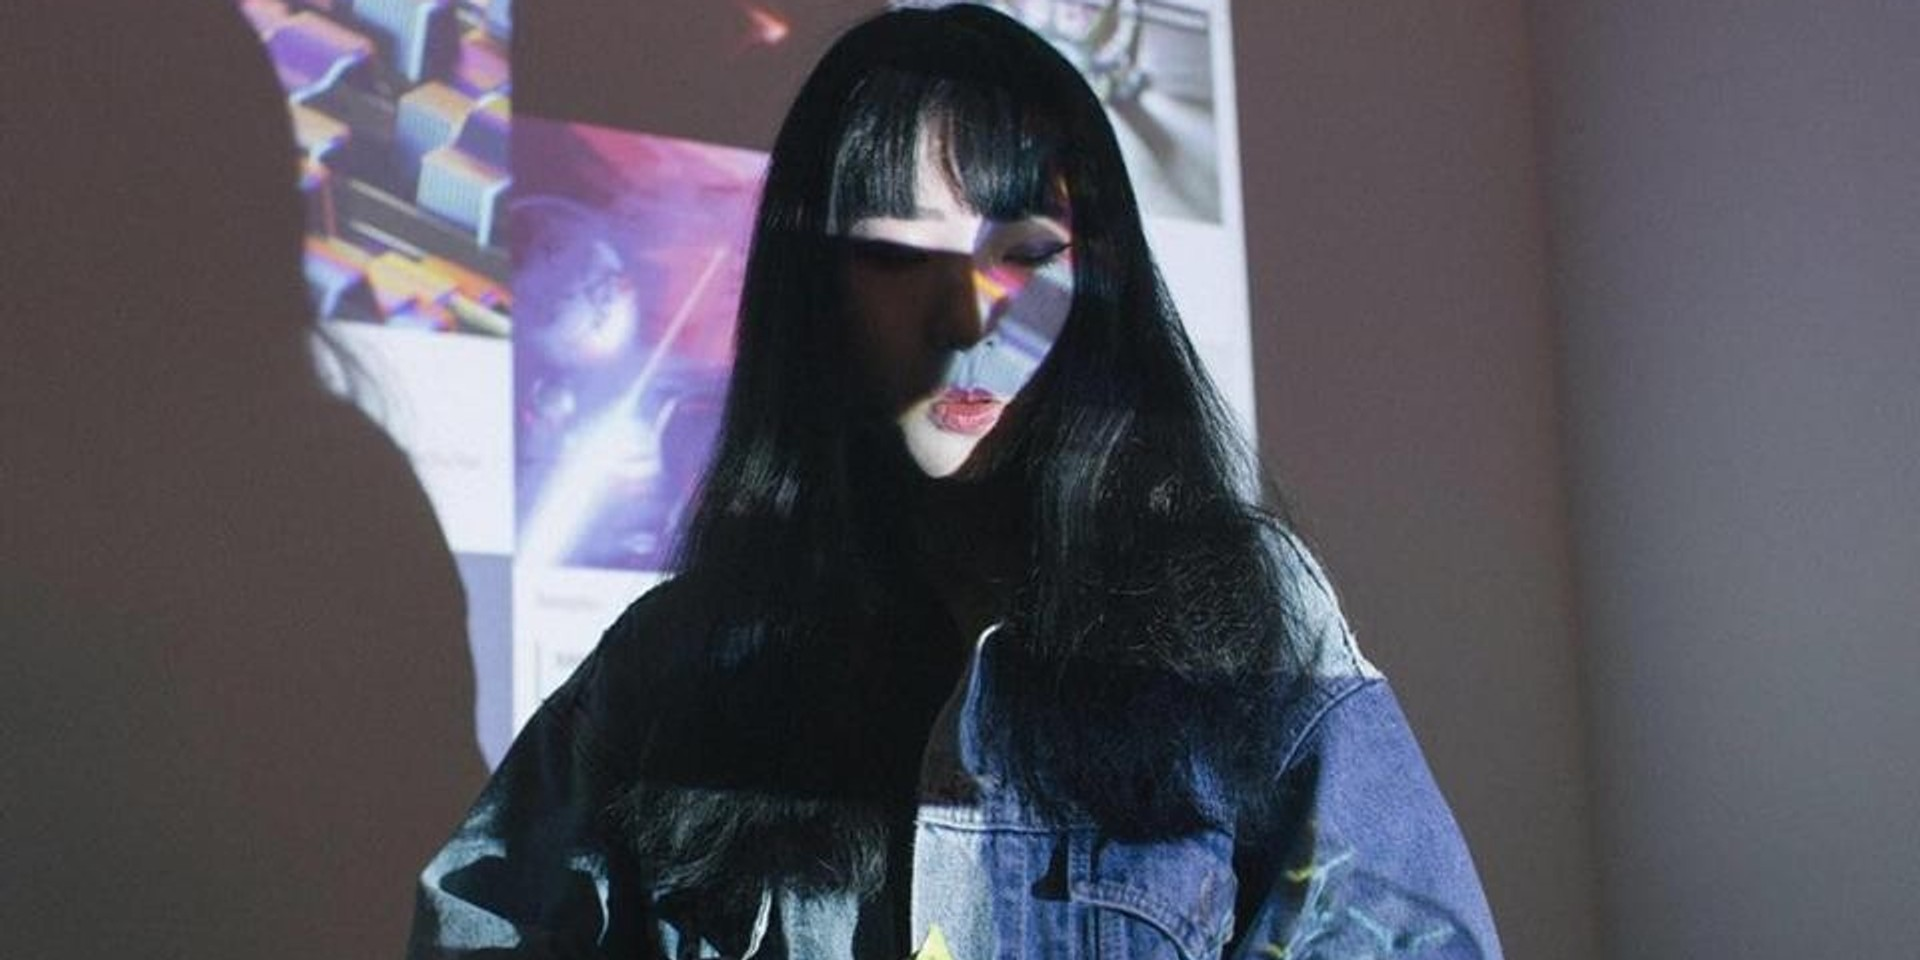 LISTEN: Lucid dreams of love and pain manifest on Yeule's ethereal new album, pathos